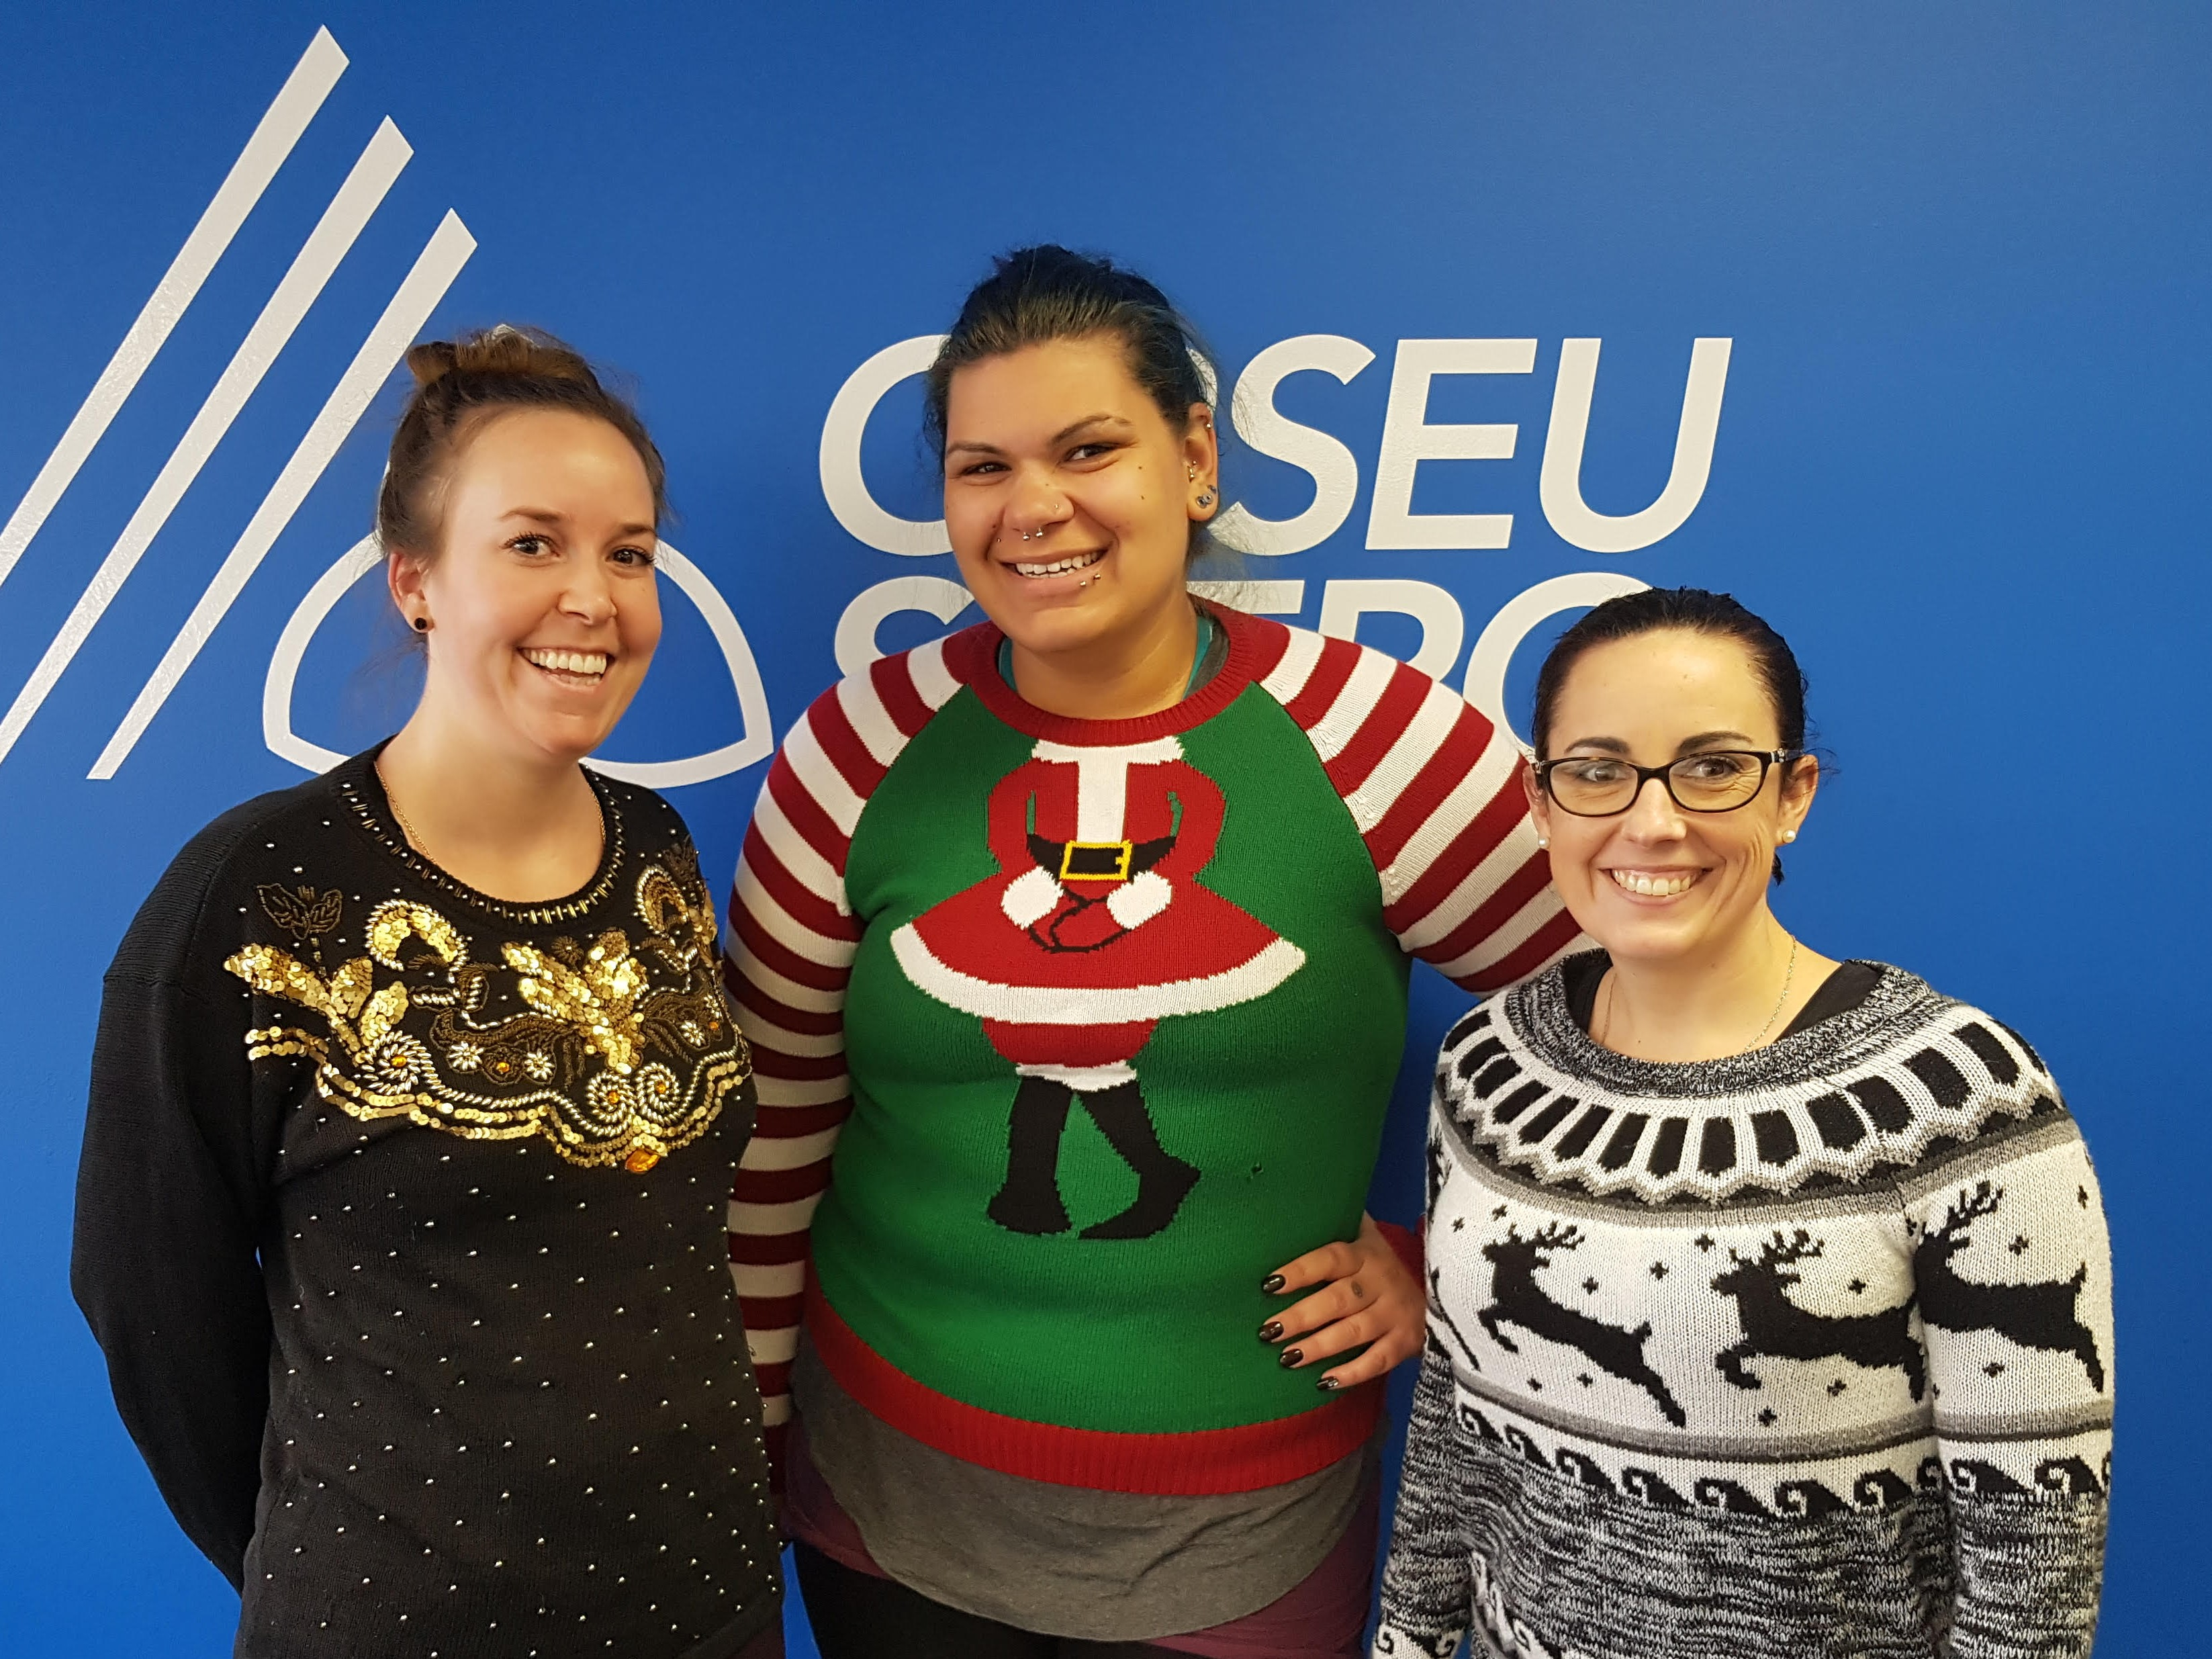 OPSEU ugly sweater